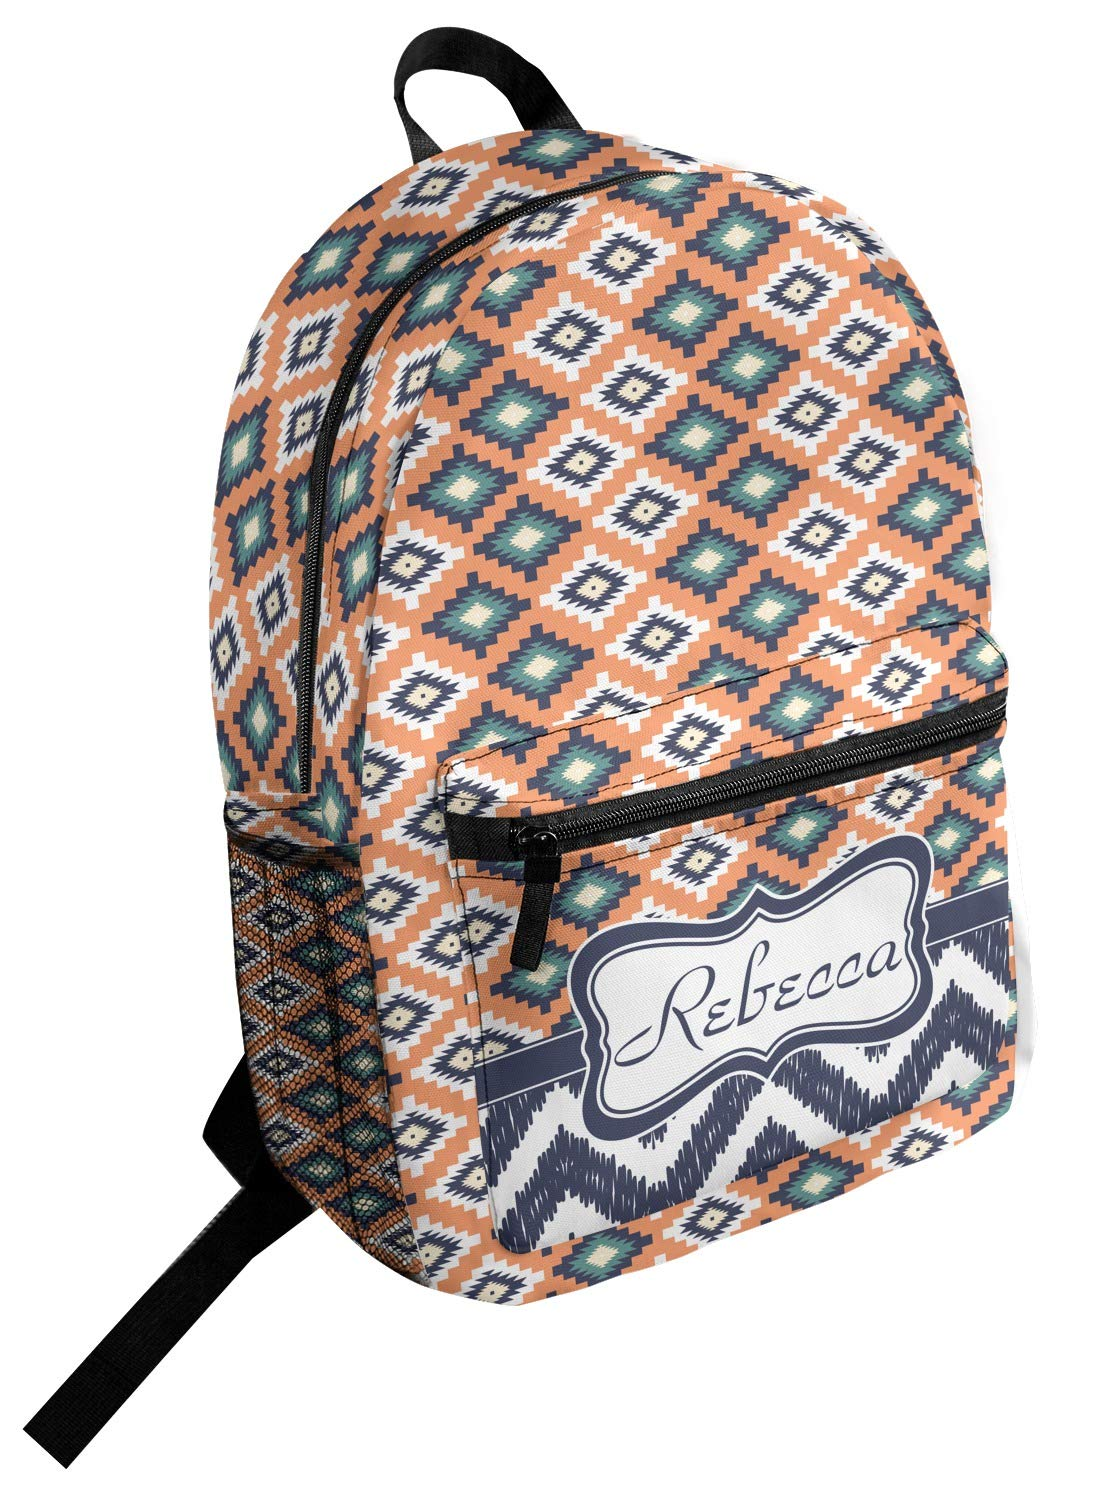 Tribal Student Backpack Personalized